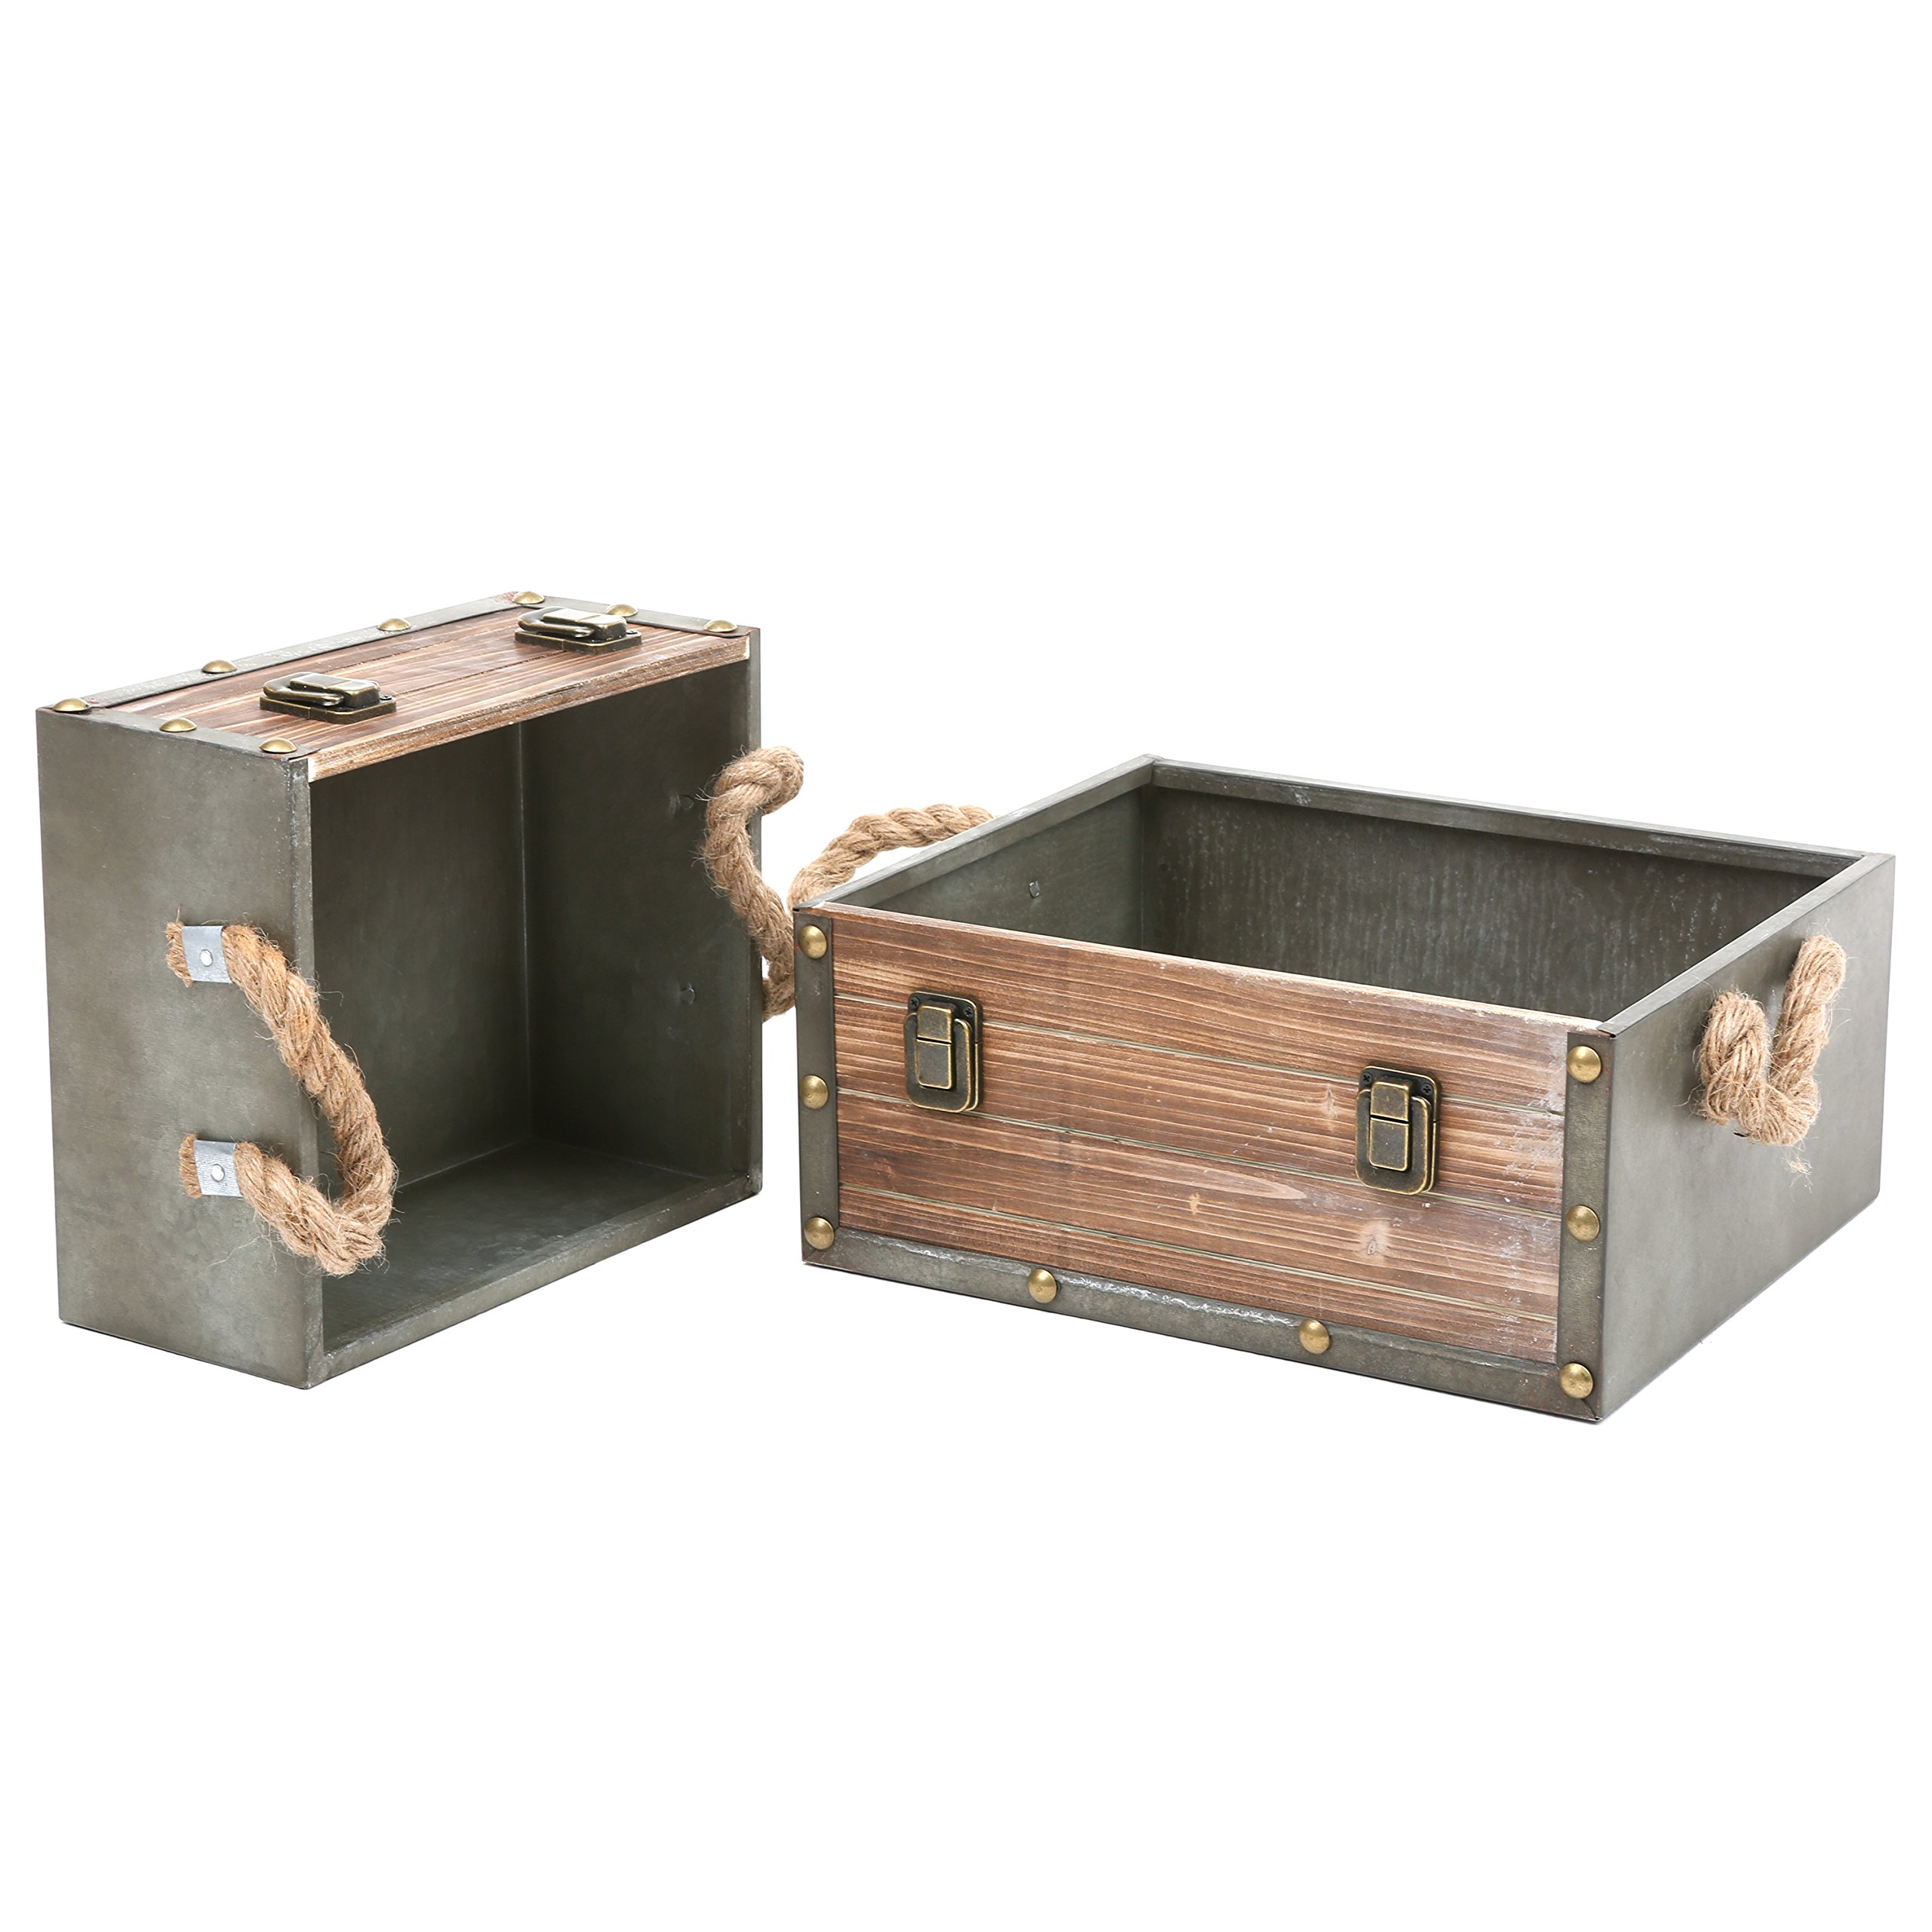 Large New Wooden Storage Box Diy Crates Toy Boxes Set: MyGift Set Of 2 Wood Crates W/ Rope Handles, Rustic